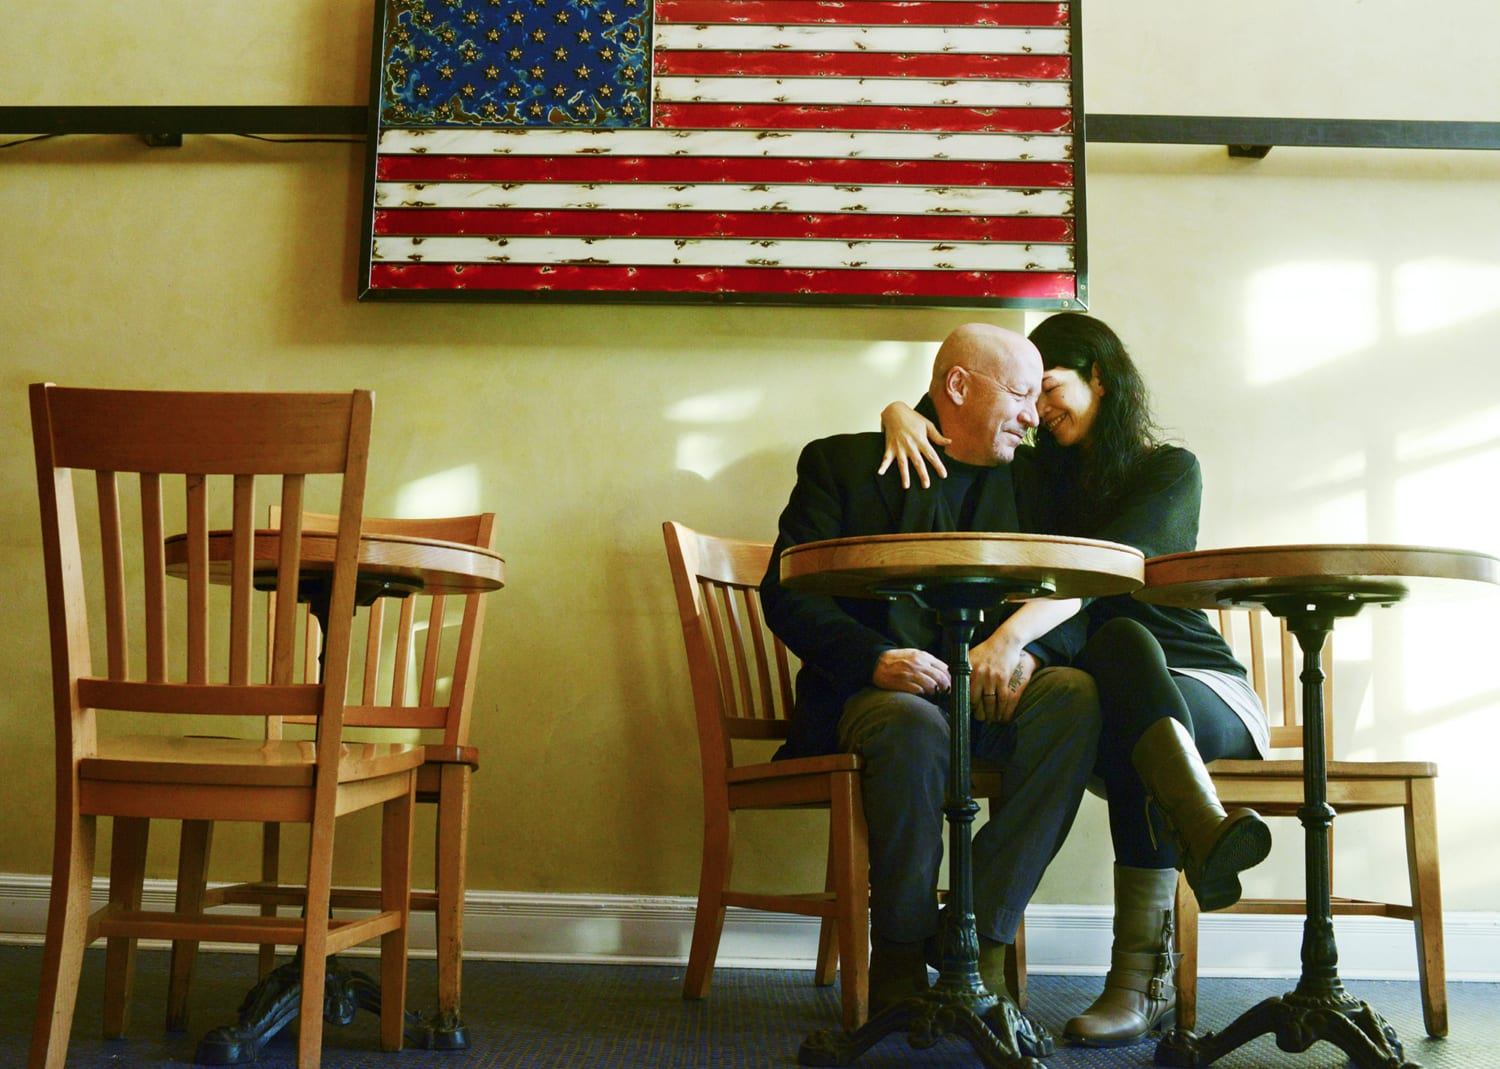 Bozeman-Portrait-Photographer-Couple-American-Flag